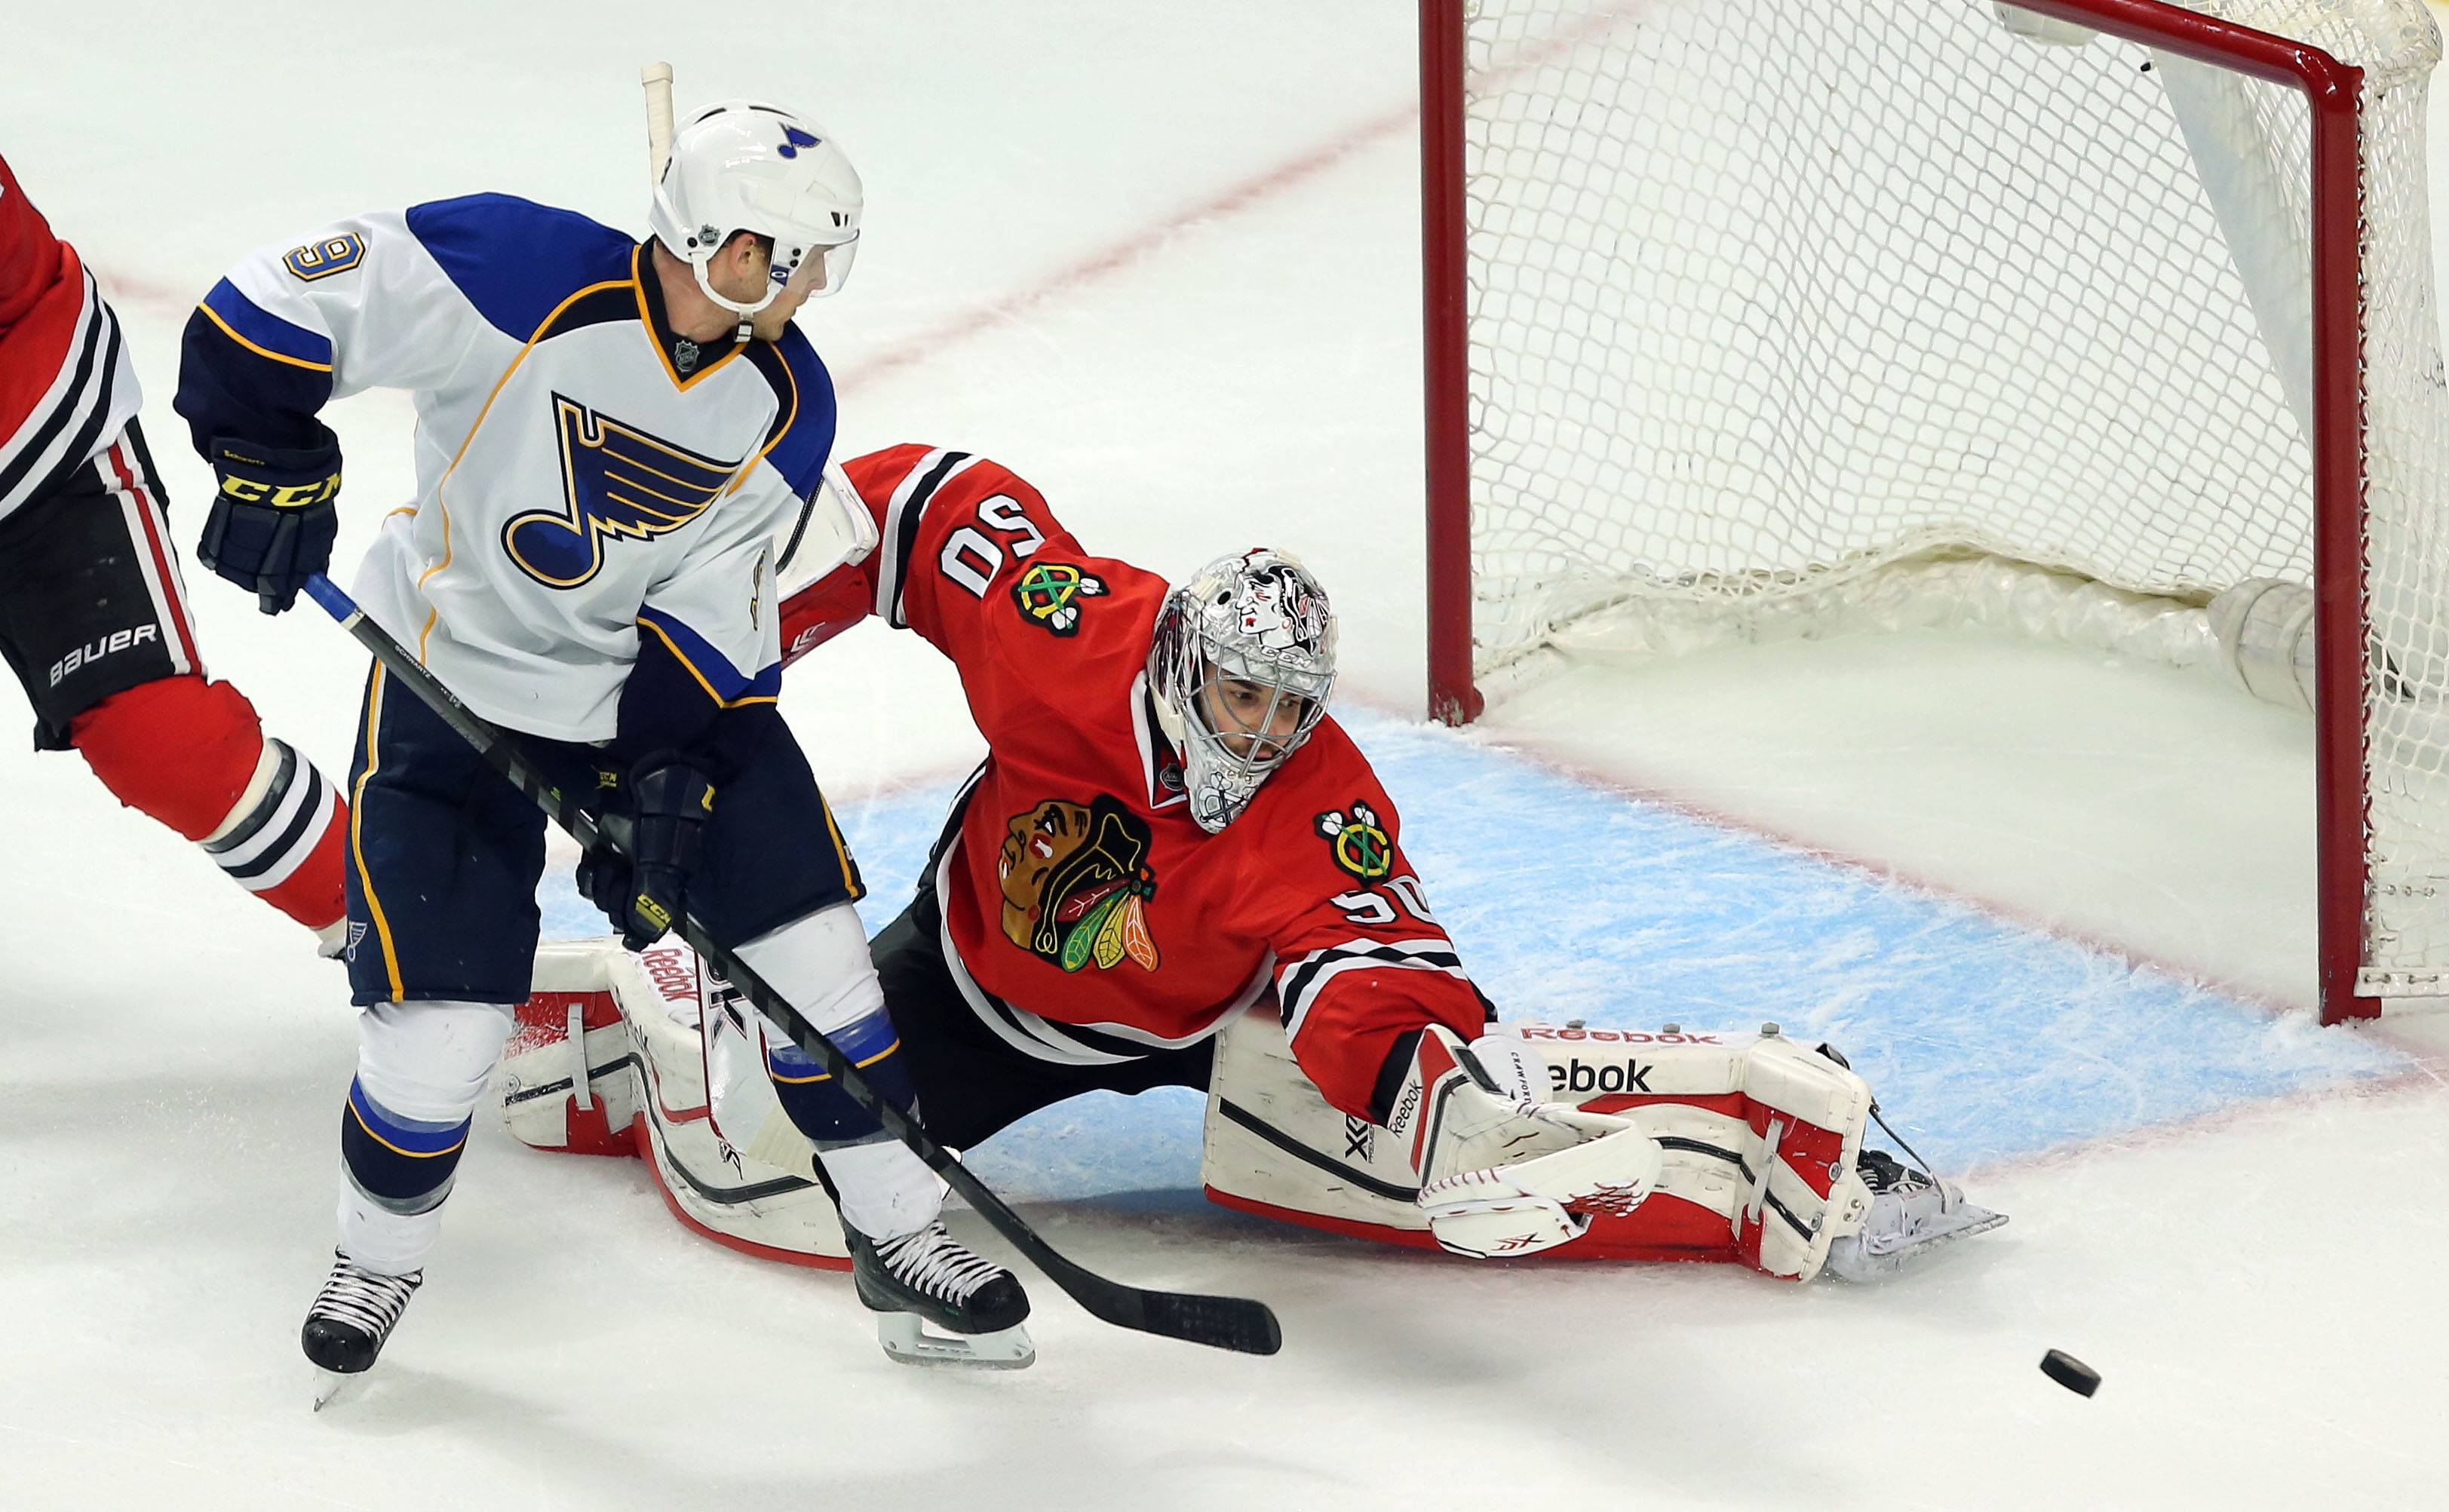 Chicago Blackhawks goalie Corey Crawford makes a save on St. Louis Blues left wing Jaden Schwartz.